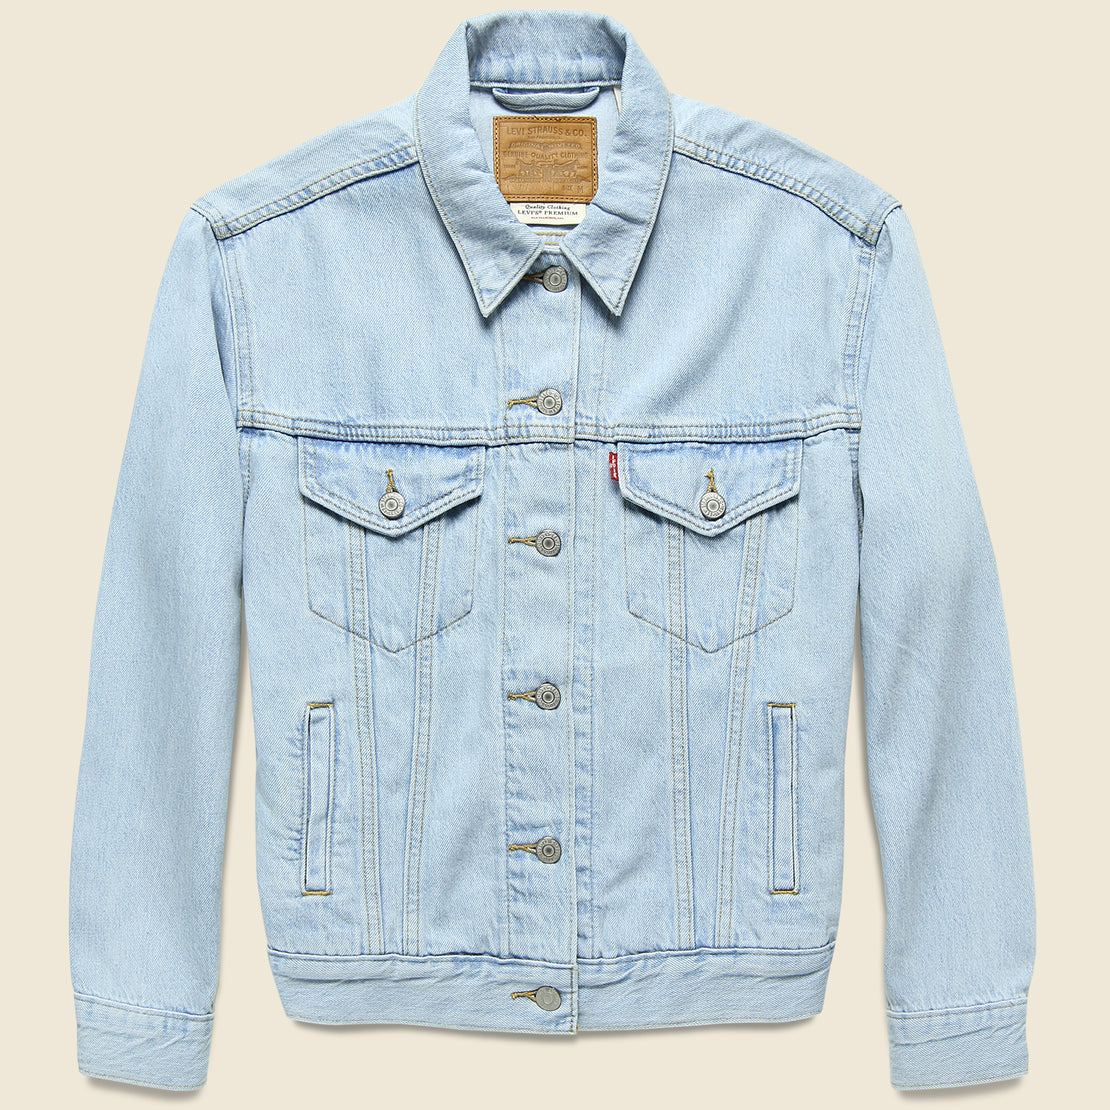 Levis Premium Ex-Boyfriend Trucker Jacket - Soft As Butter